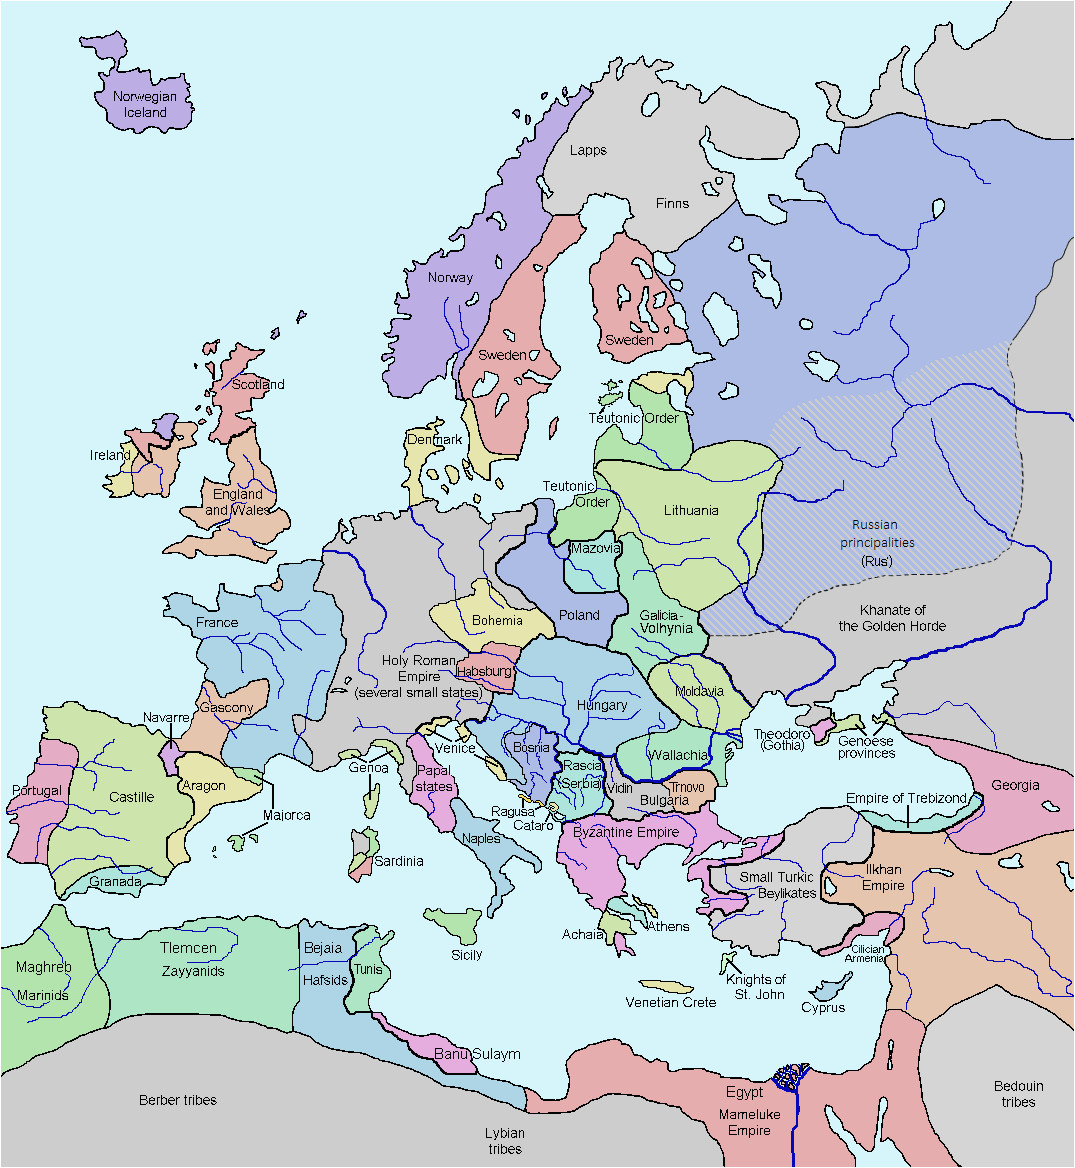 Europe 1912 Map atlas Of European History Wikimedia Commons